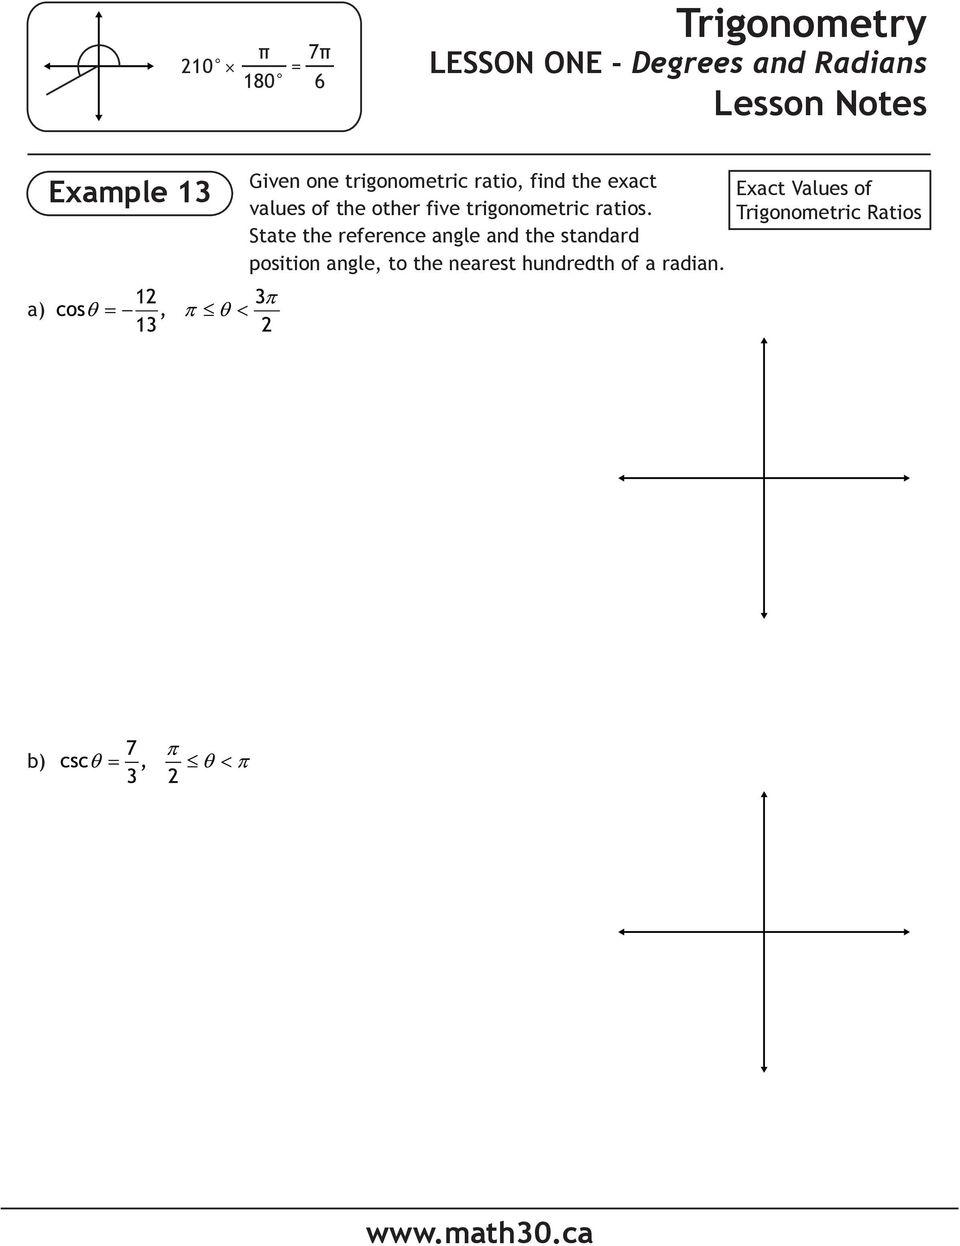 State the reference angle and the standard position angle, to the